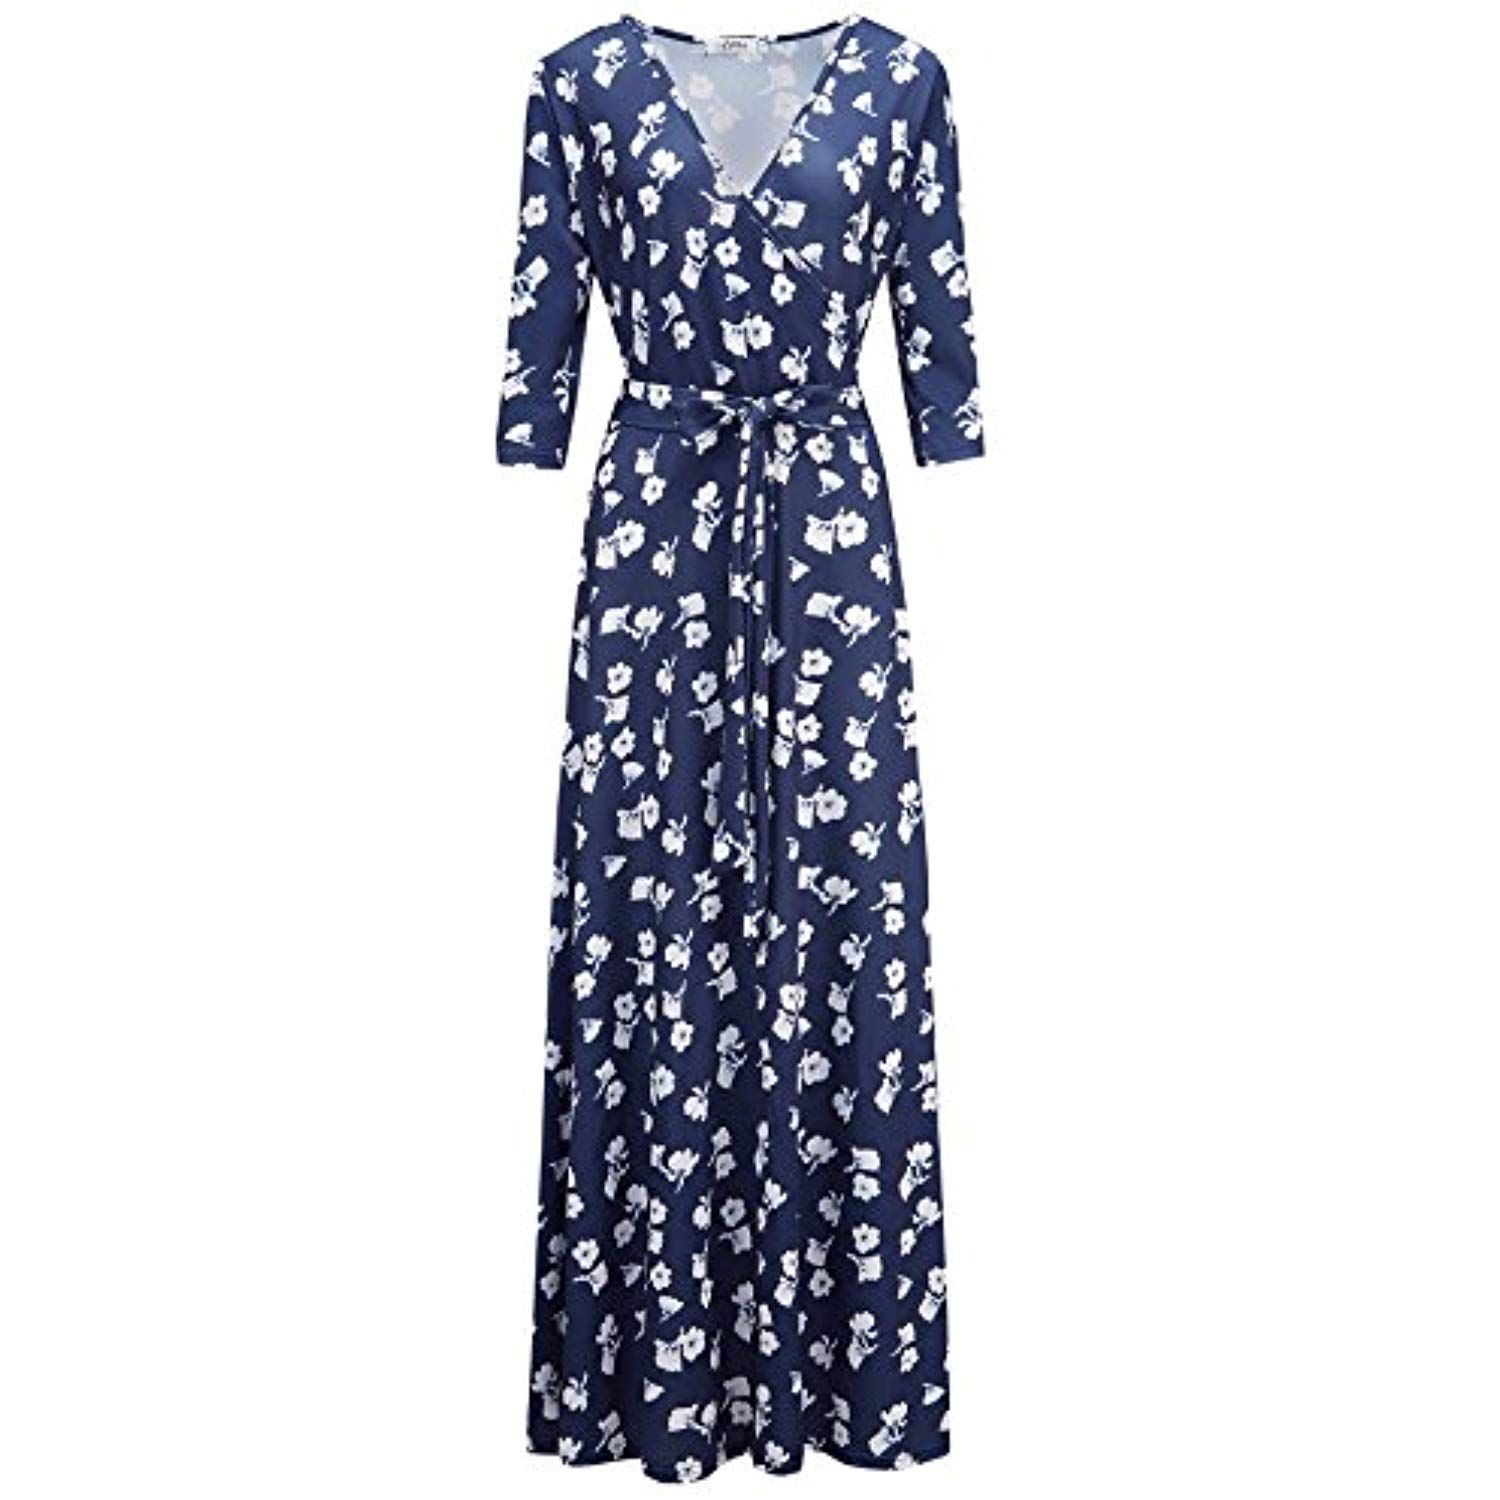 Womens Bohemian 3 4 Sleeve Faux Wrap Maxi Dress With Belt You Can Find More Details By Visiting The Image Link This Is An A Maxi Dress Dresses Airy Dress [ 1500 x 1500 Pixel ]